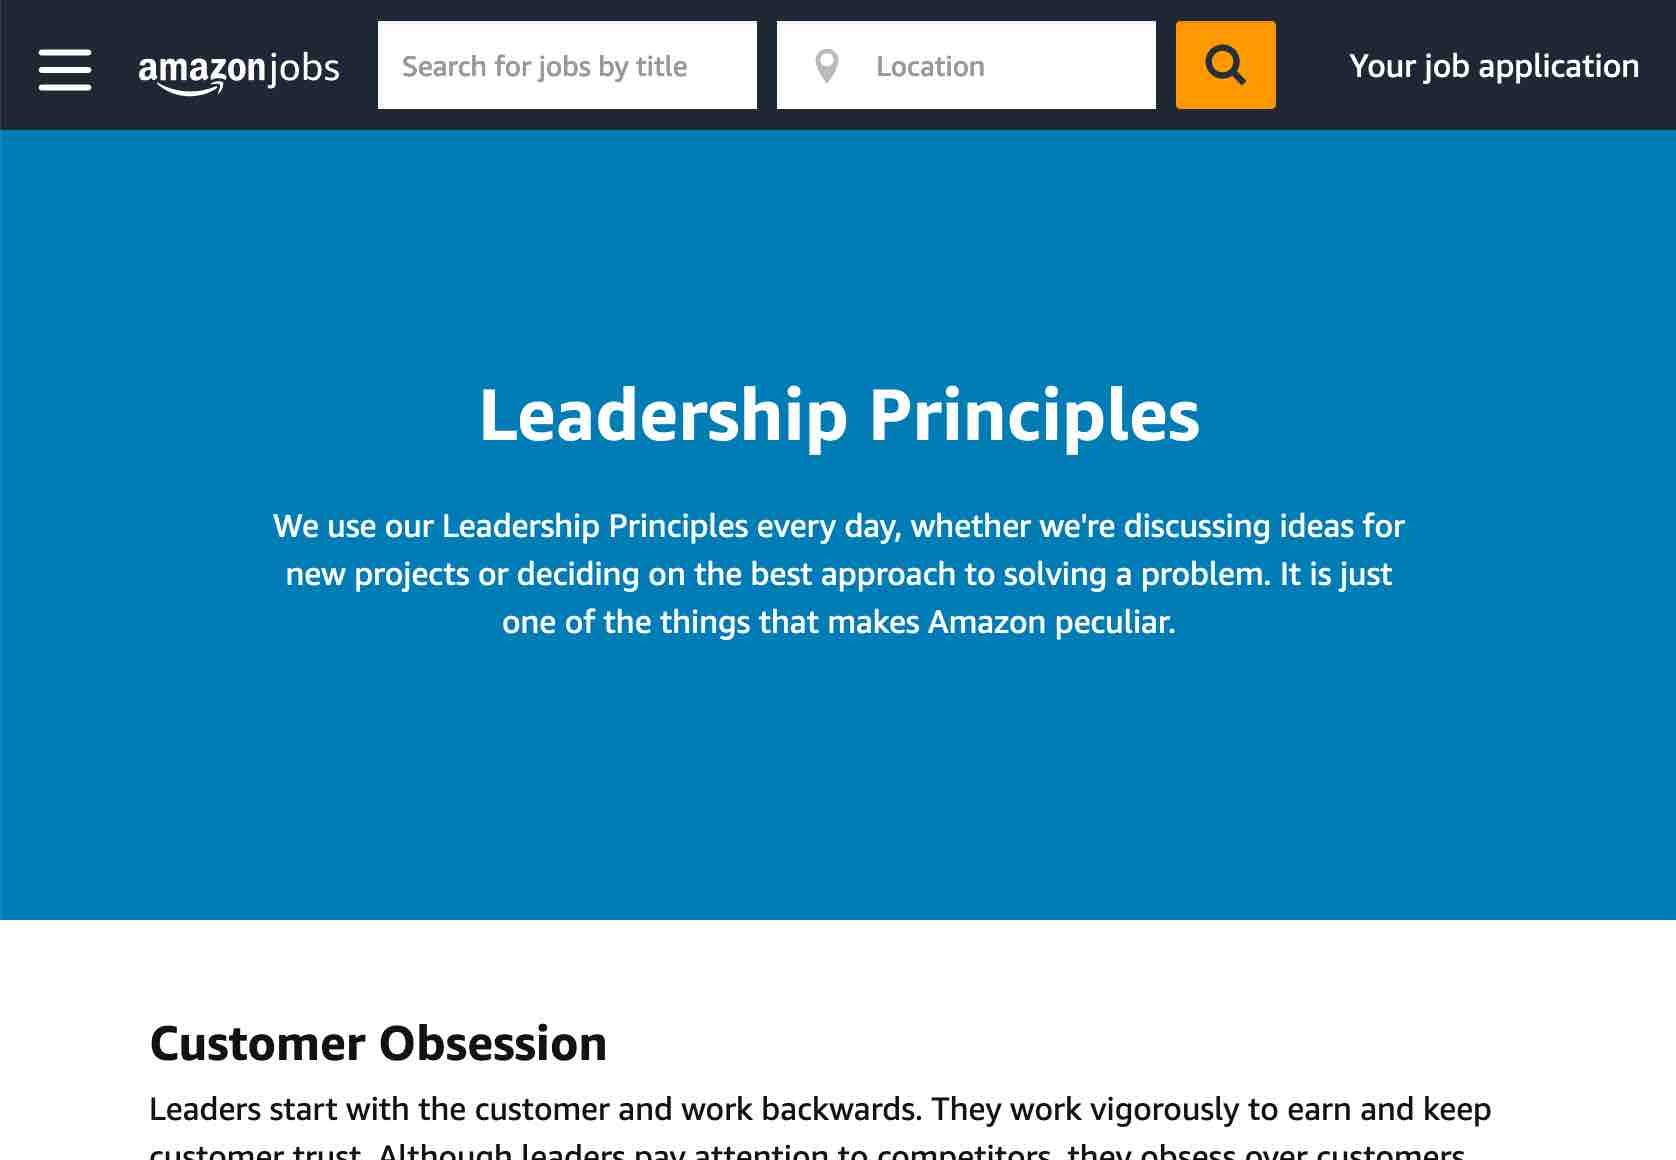 Amazon's Leadership Principles